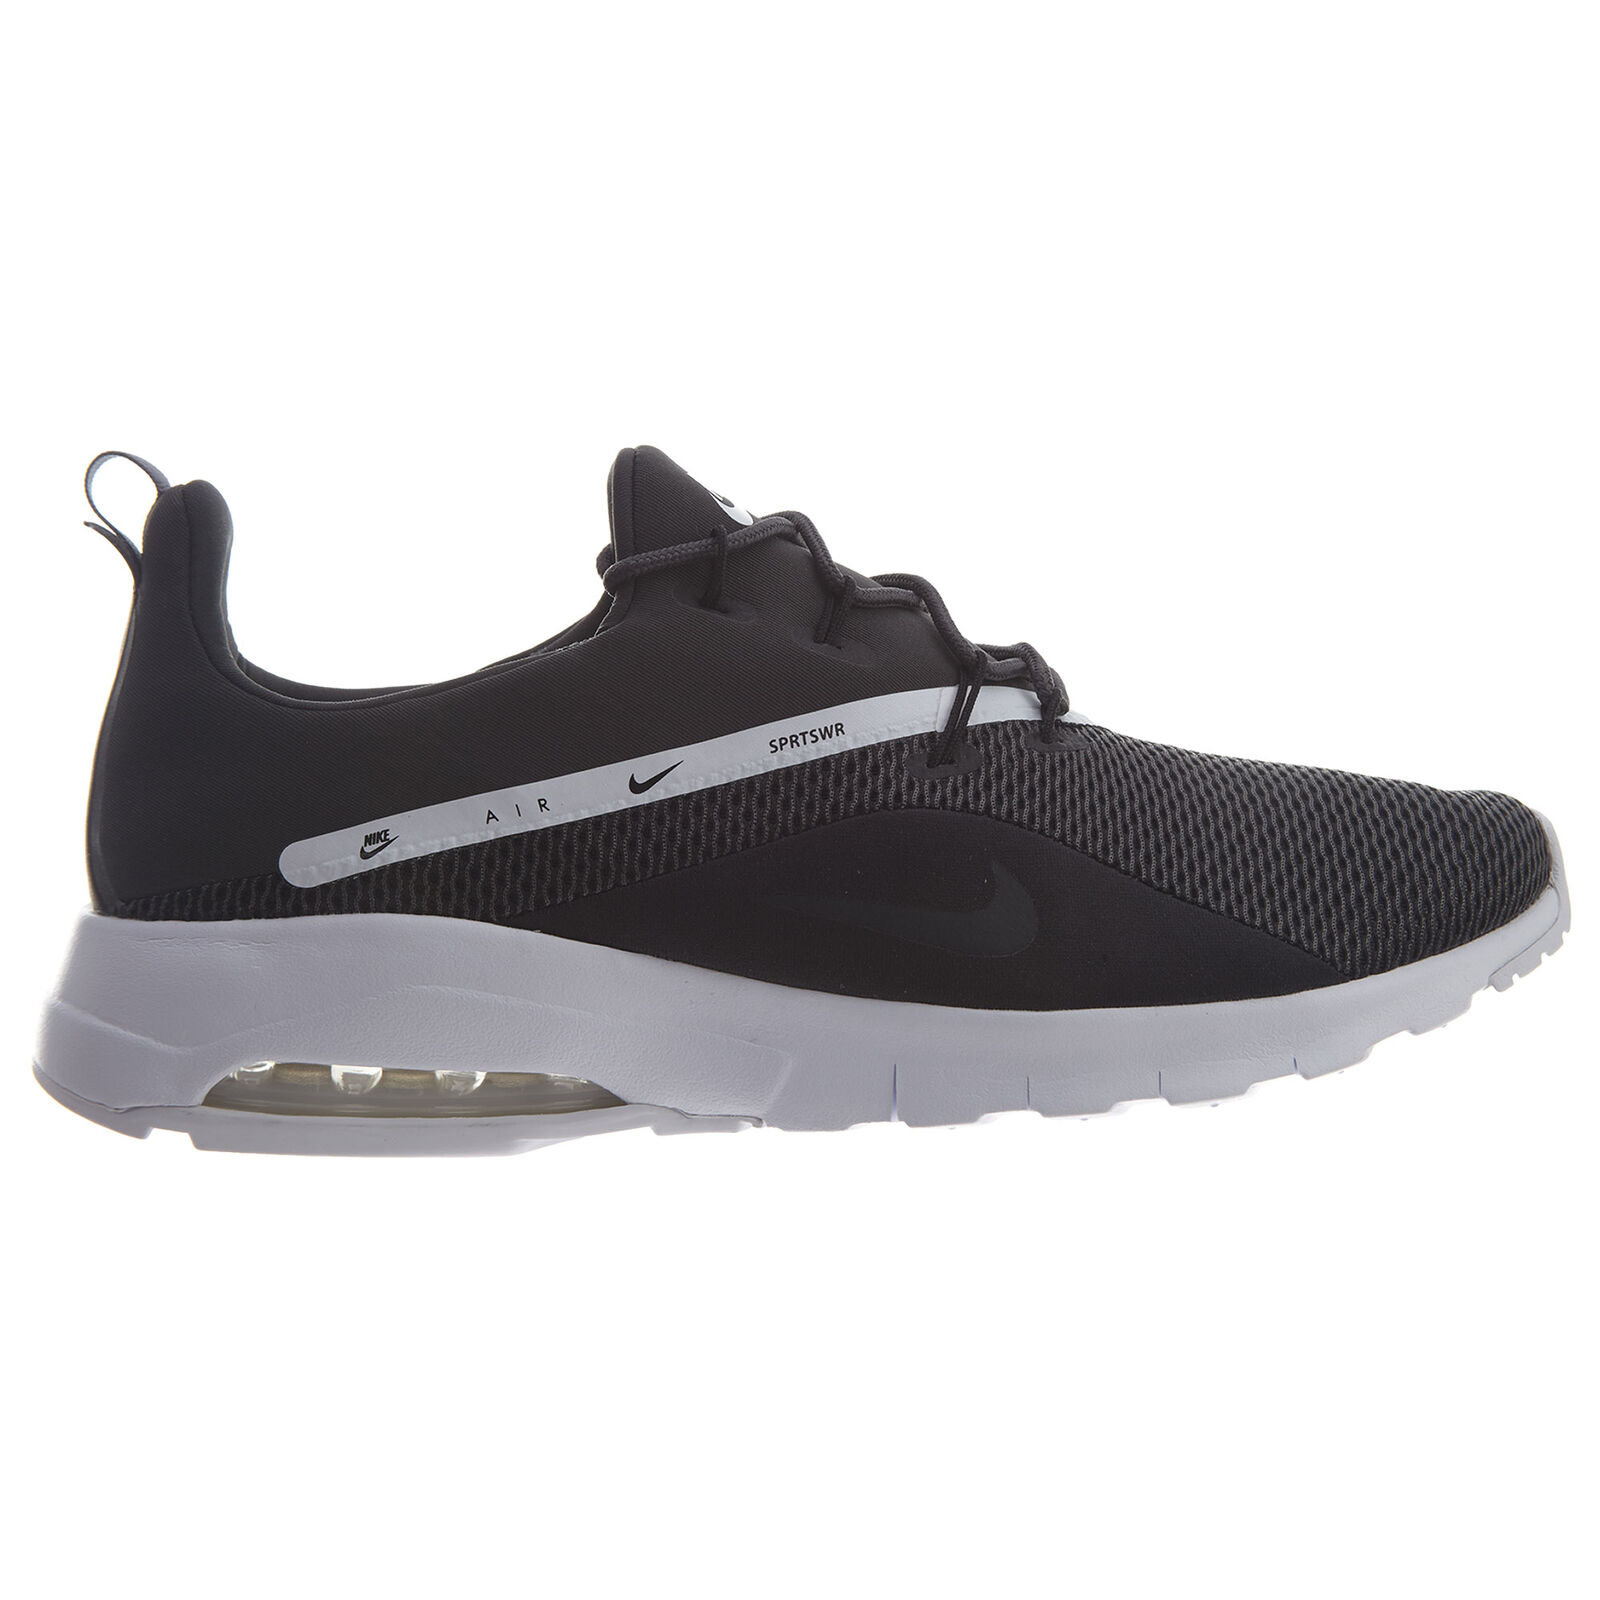 8900671c51 Nike Air Max Motion Racer 2 Mens AA2178-005 Black White Running shoes Size  10